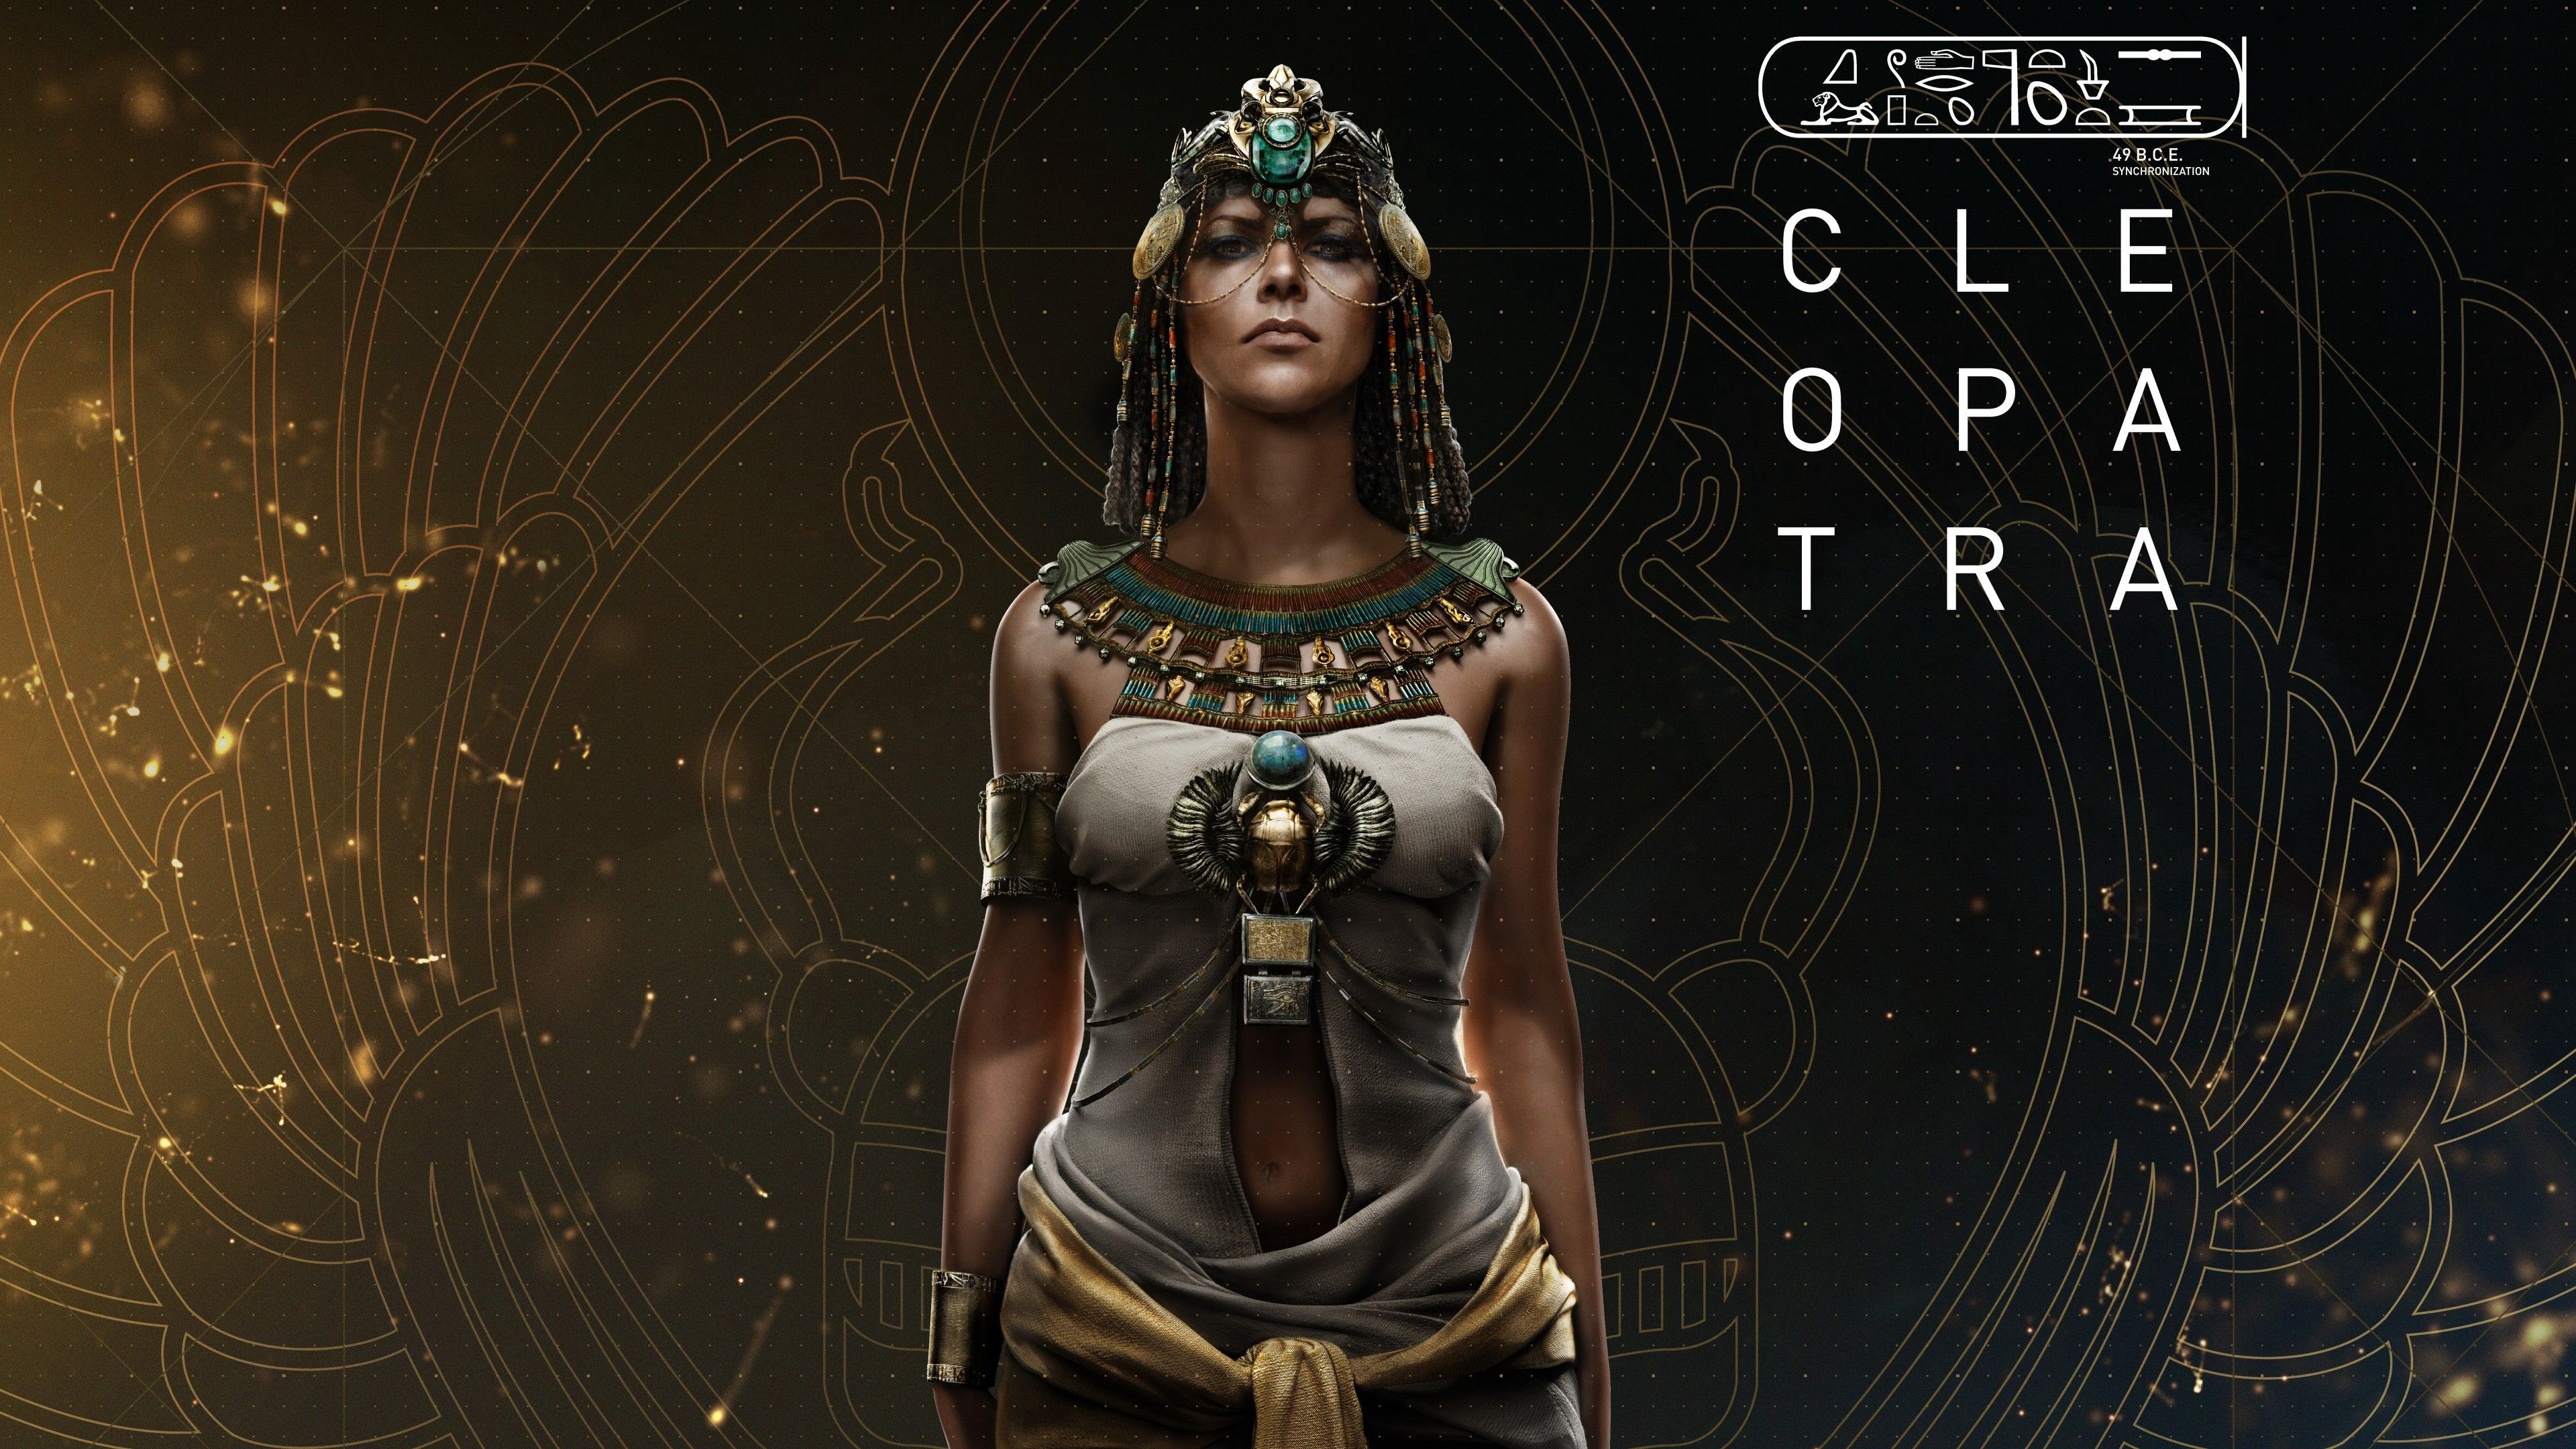 Cleopatra Assassins Creed Origins 4k Wallpaper By Jignesh Patani